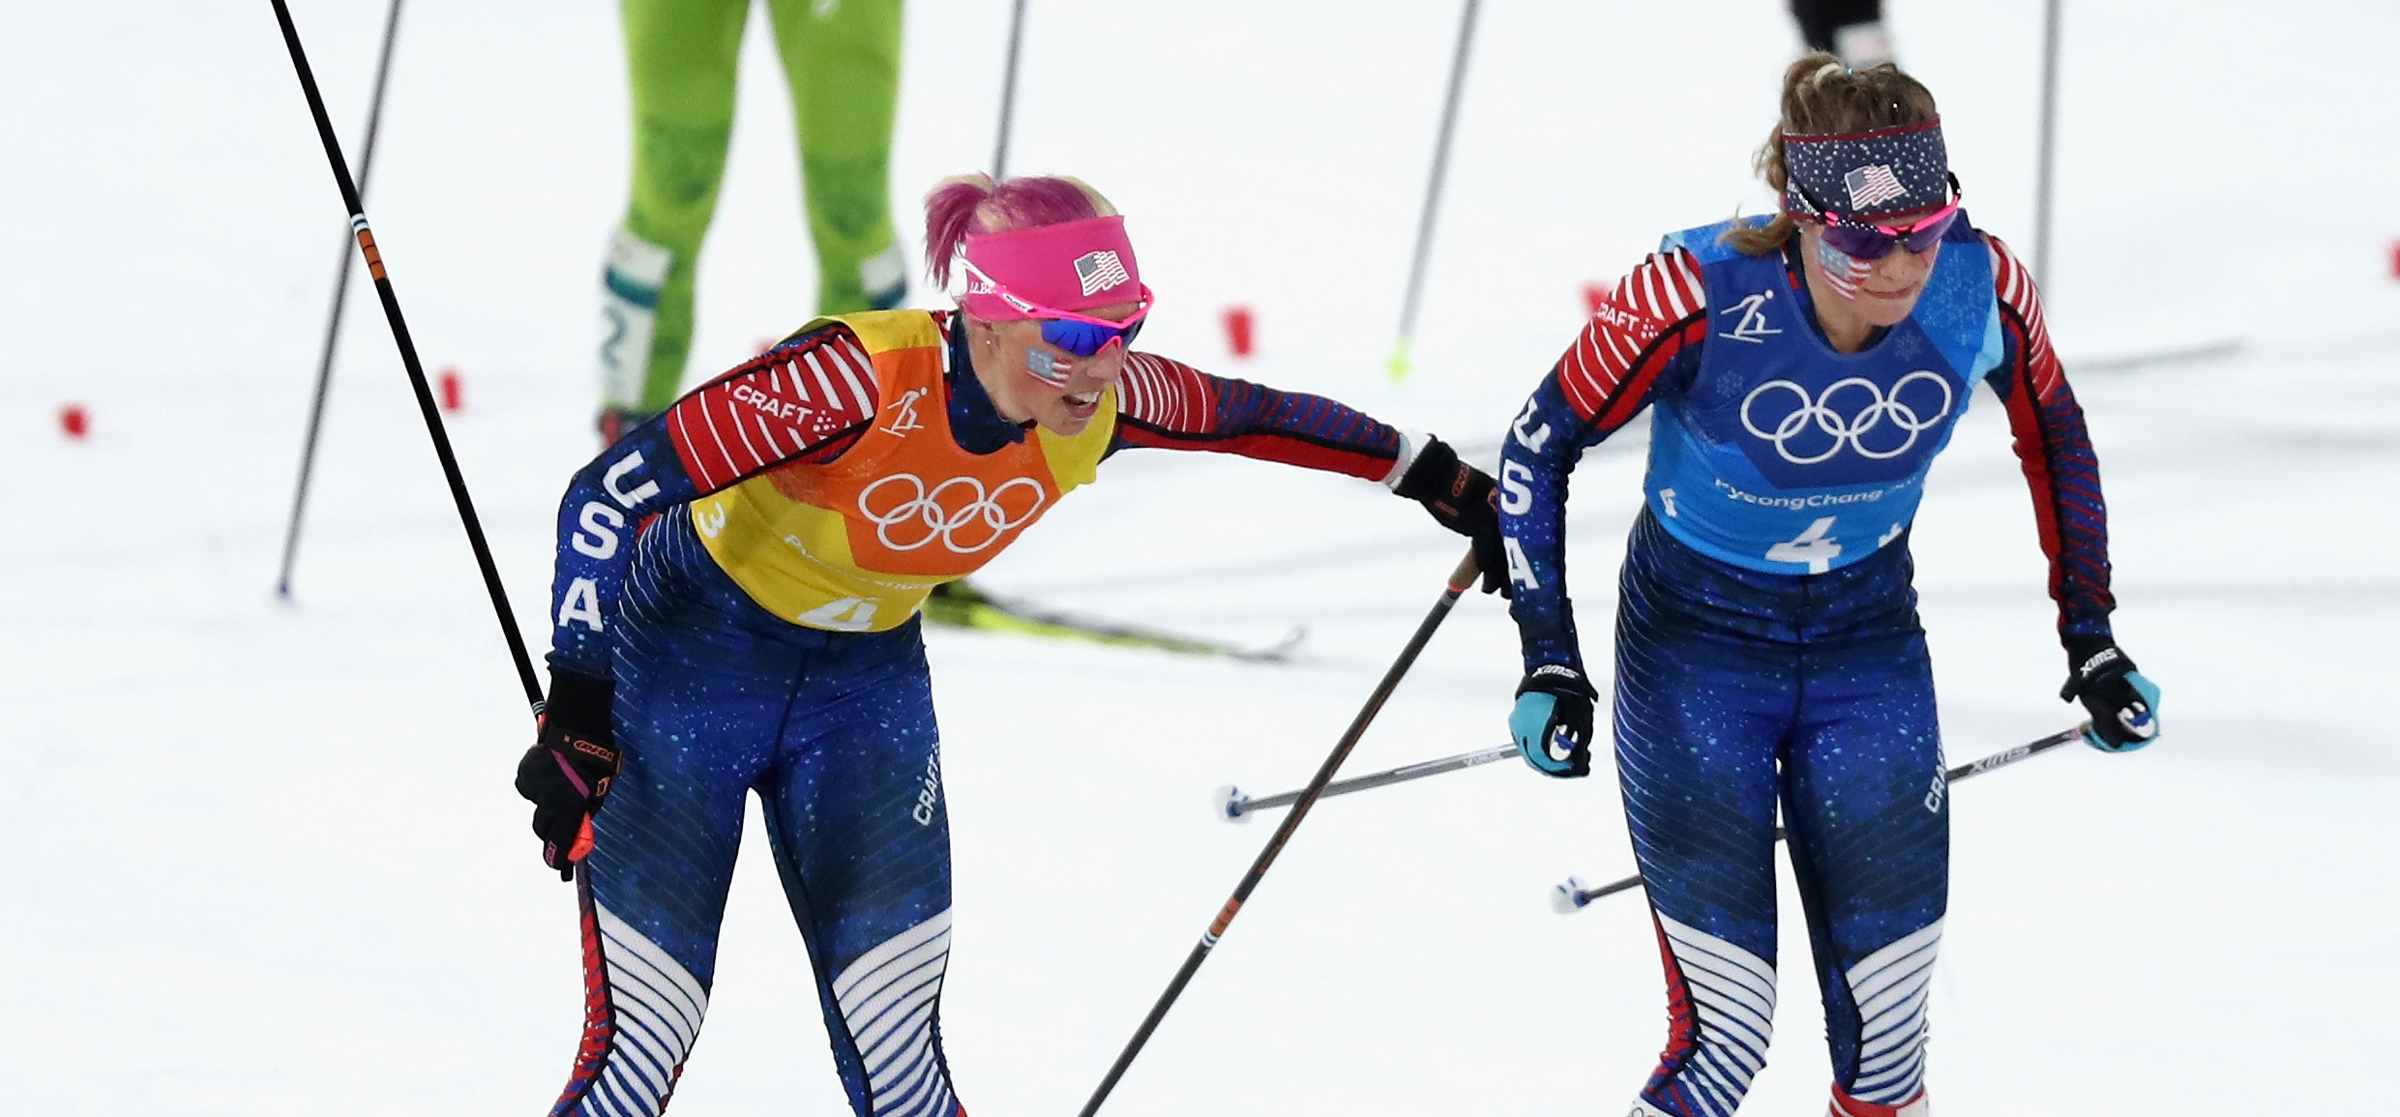 Kikkan Randall tags Jessica Diggins for the final leg of the women's 4x5k relay at Alpensia Cross-Country Centre. (Getty Images - Lars Baron)